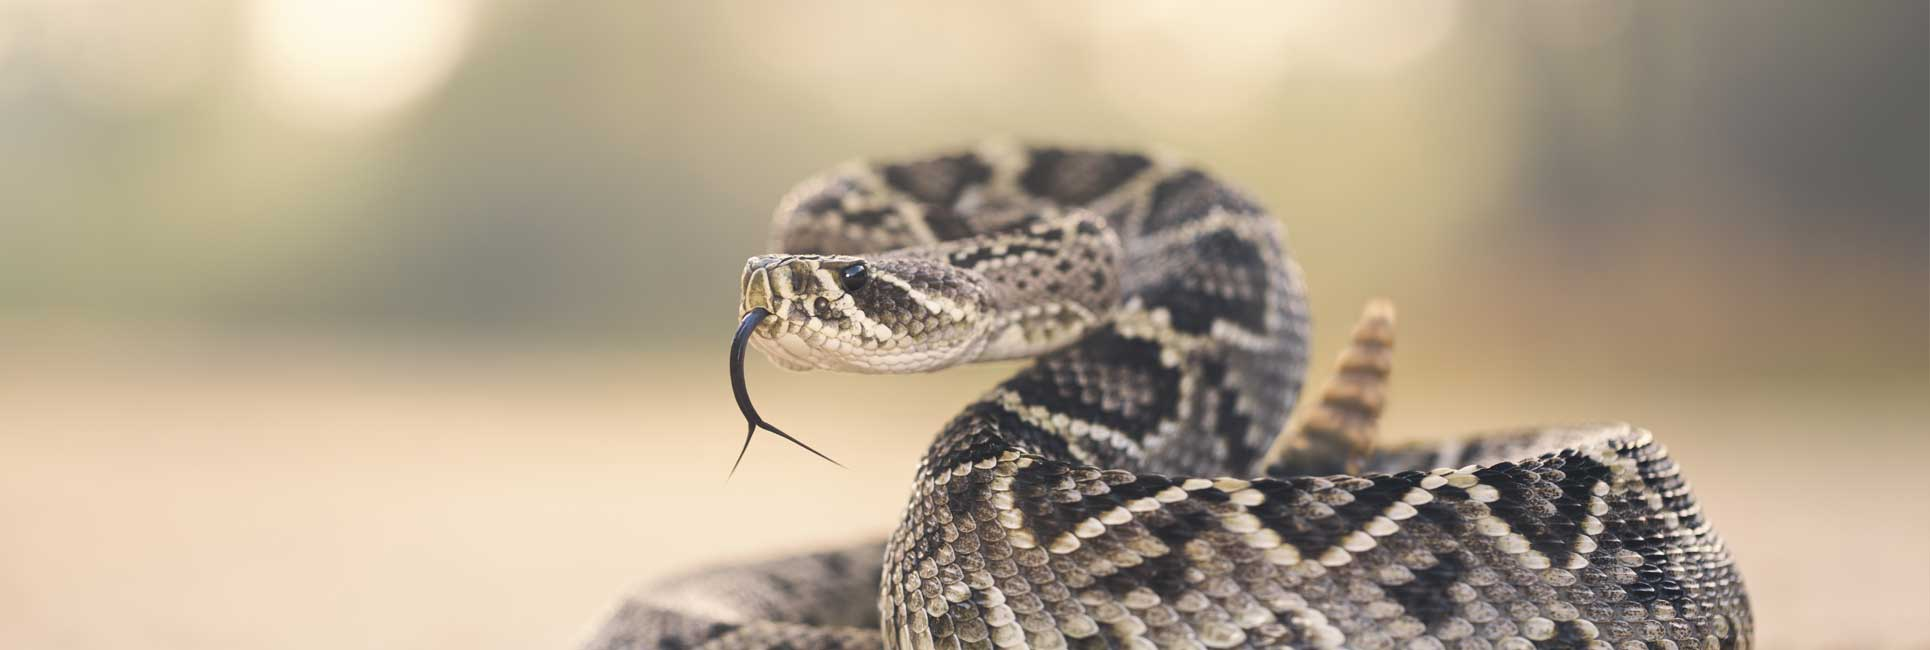 A Rattlesnake curled up with his rattle in the air ready to strike